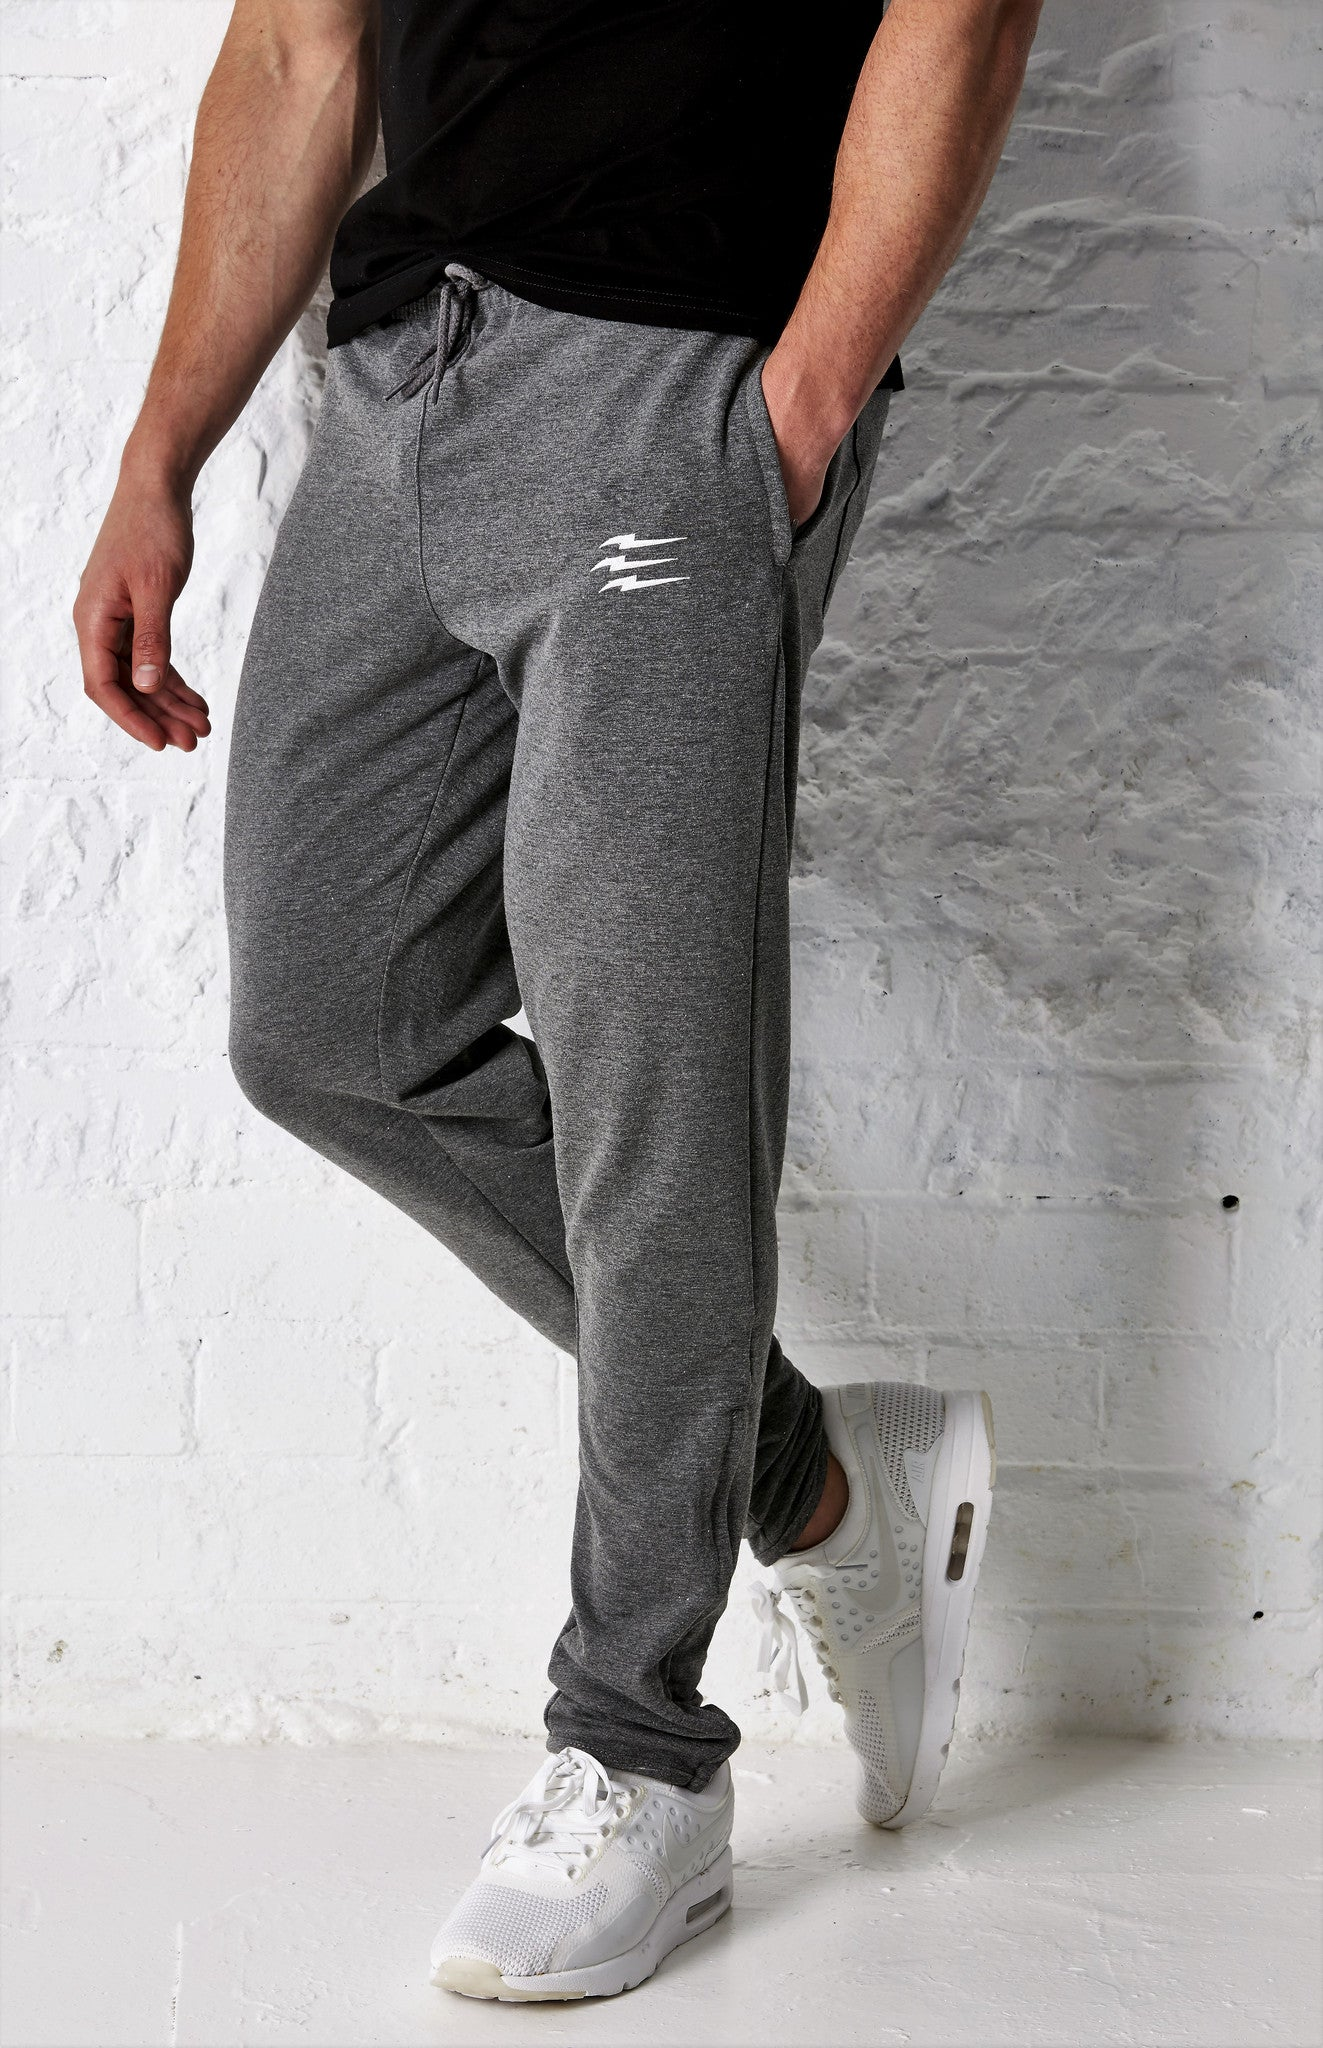 PREDACORE PERFORM BOTTOMS - MARL GREY